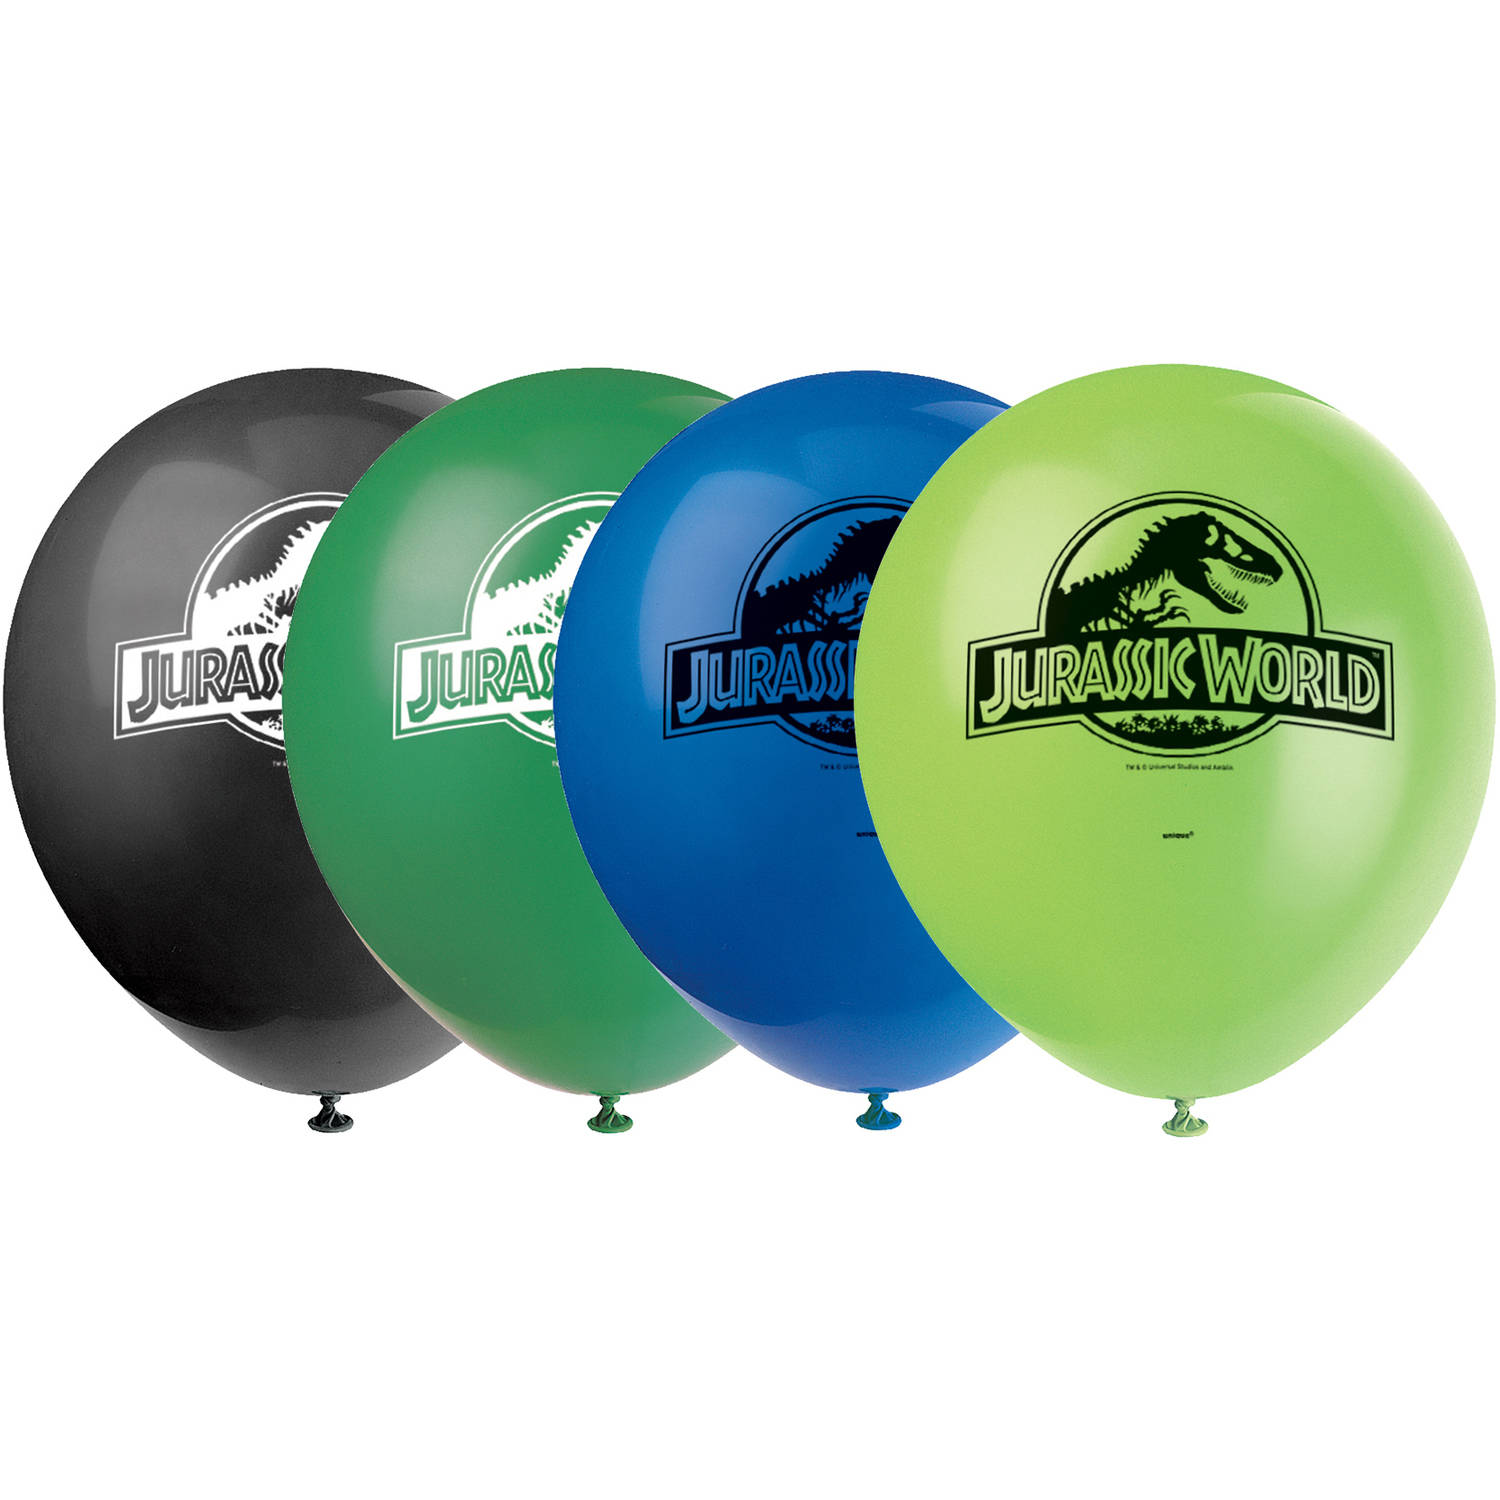 "12"" Latex Jurassic World Balloons, 8ct"